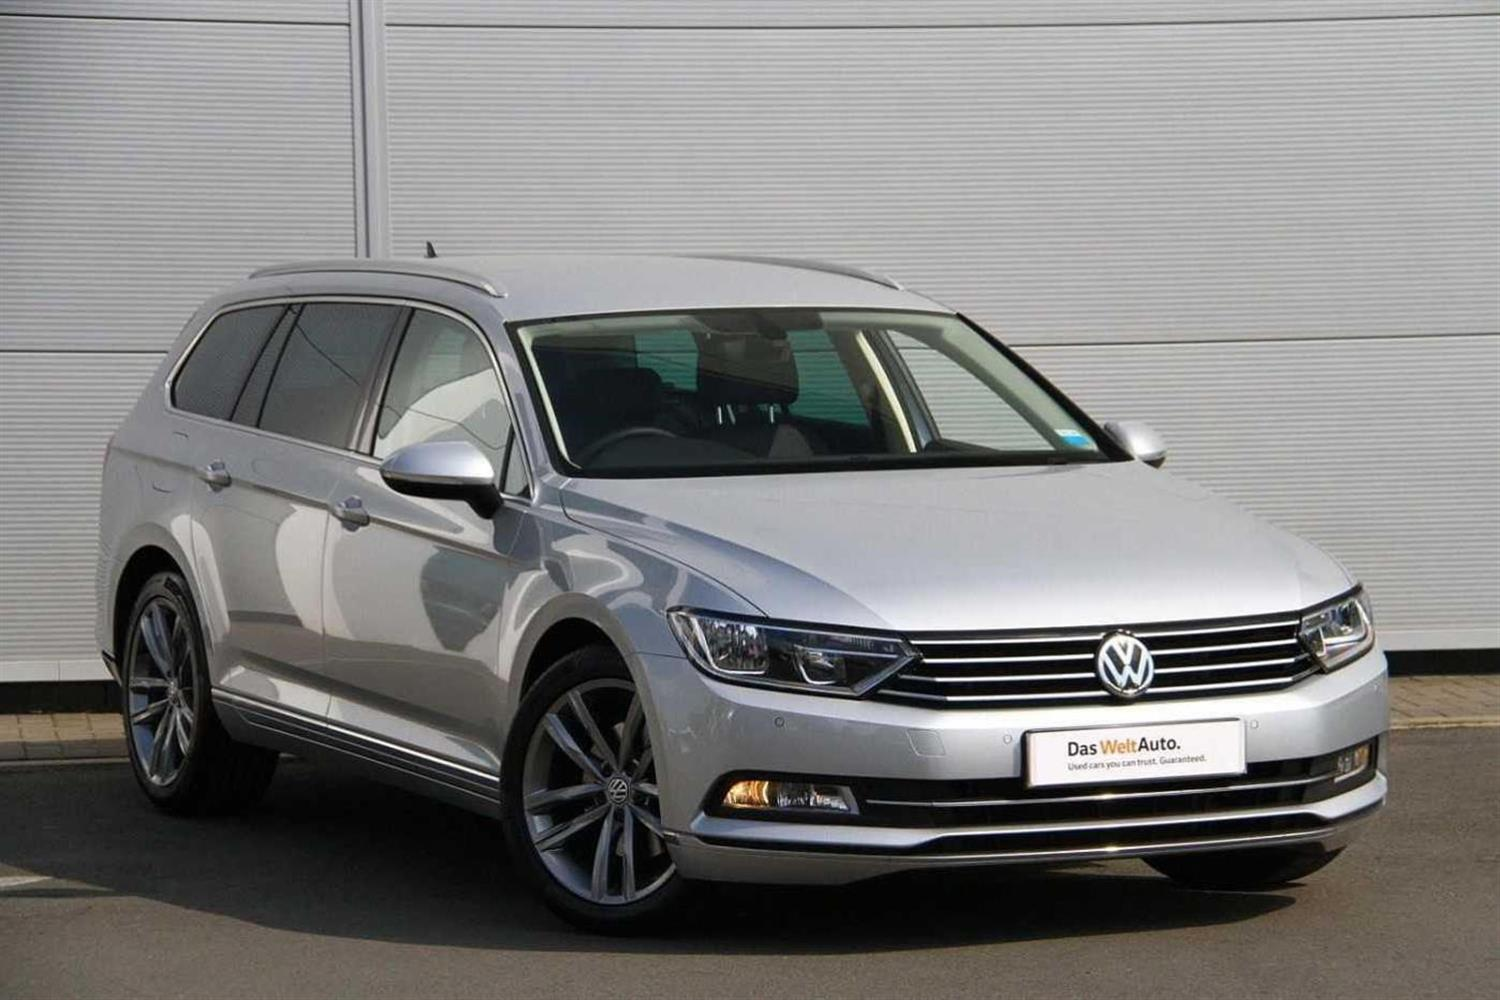 2016 Passat MK8 Estate 2.0 TDI GT (150 PS) for Sale in Edinburgh